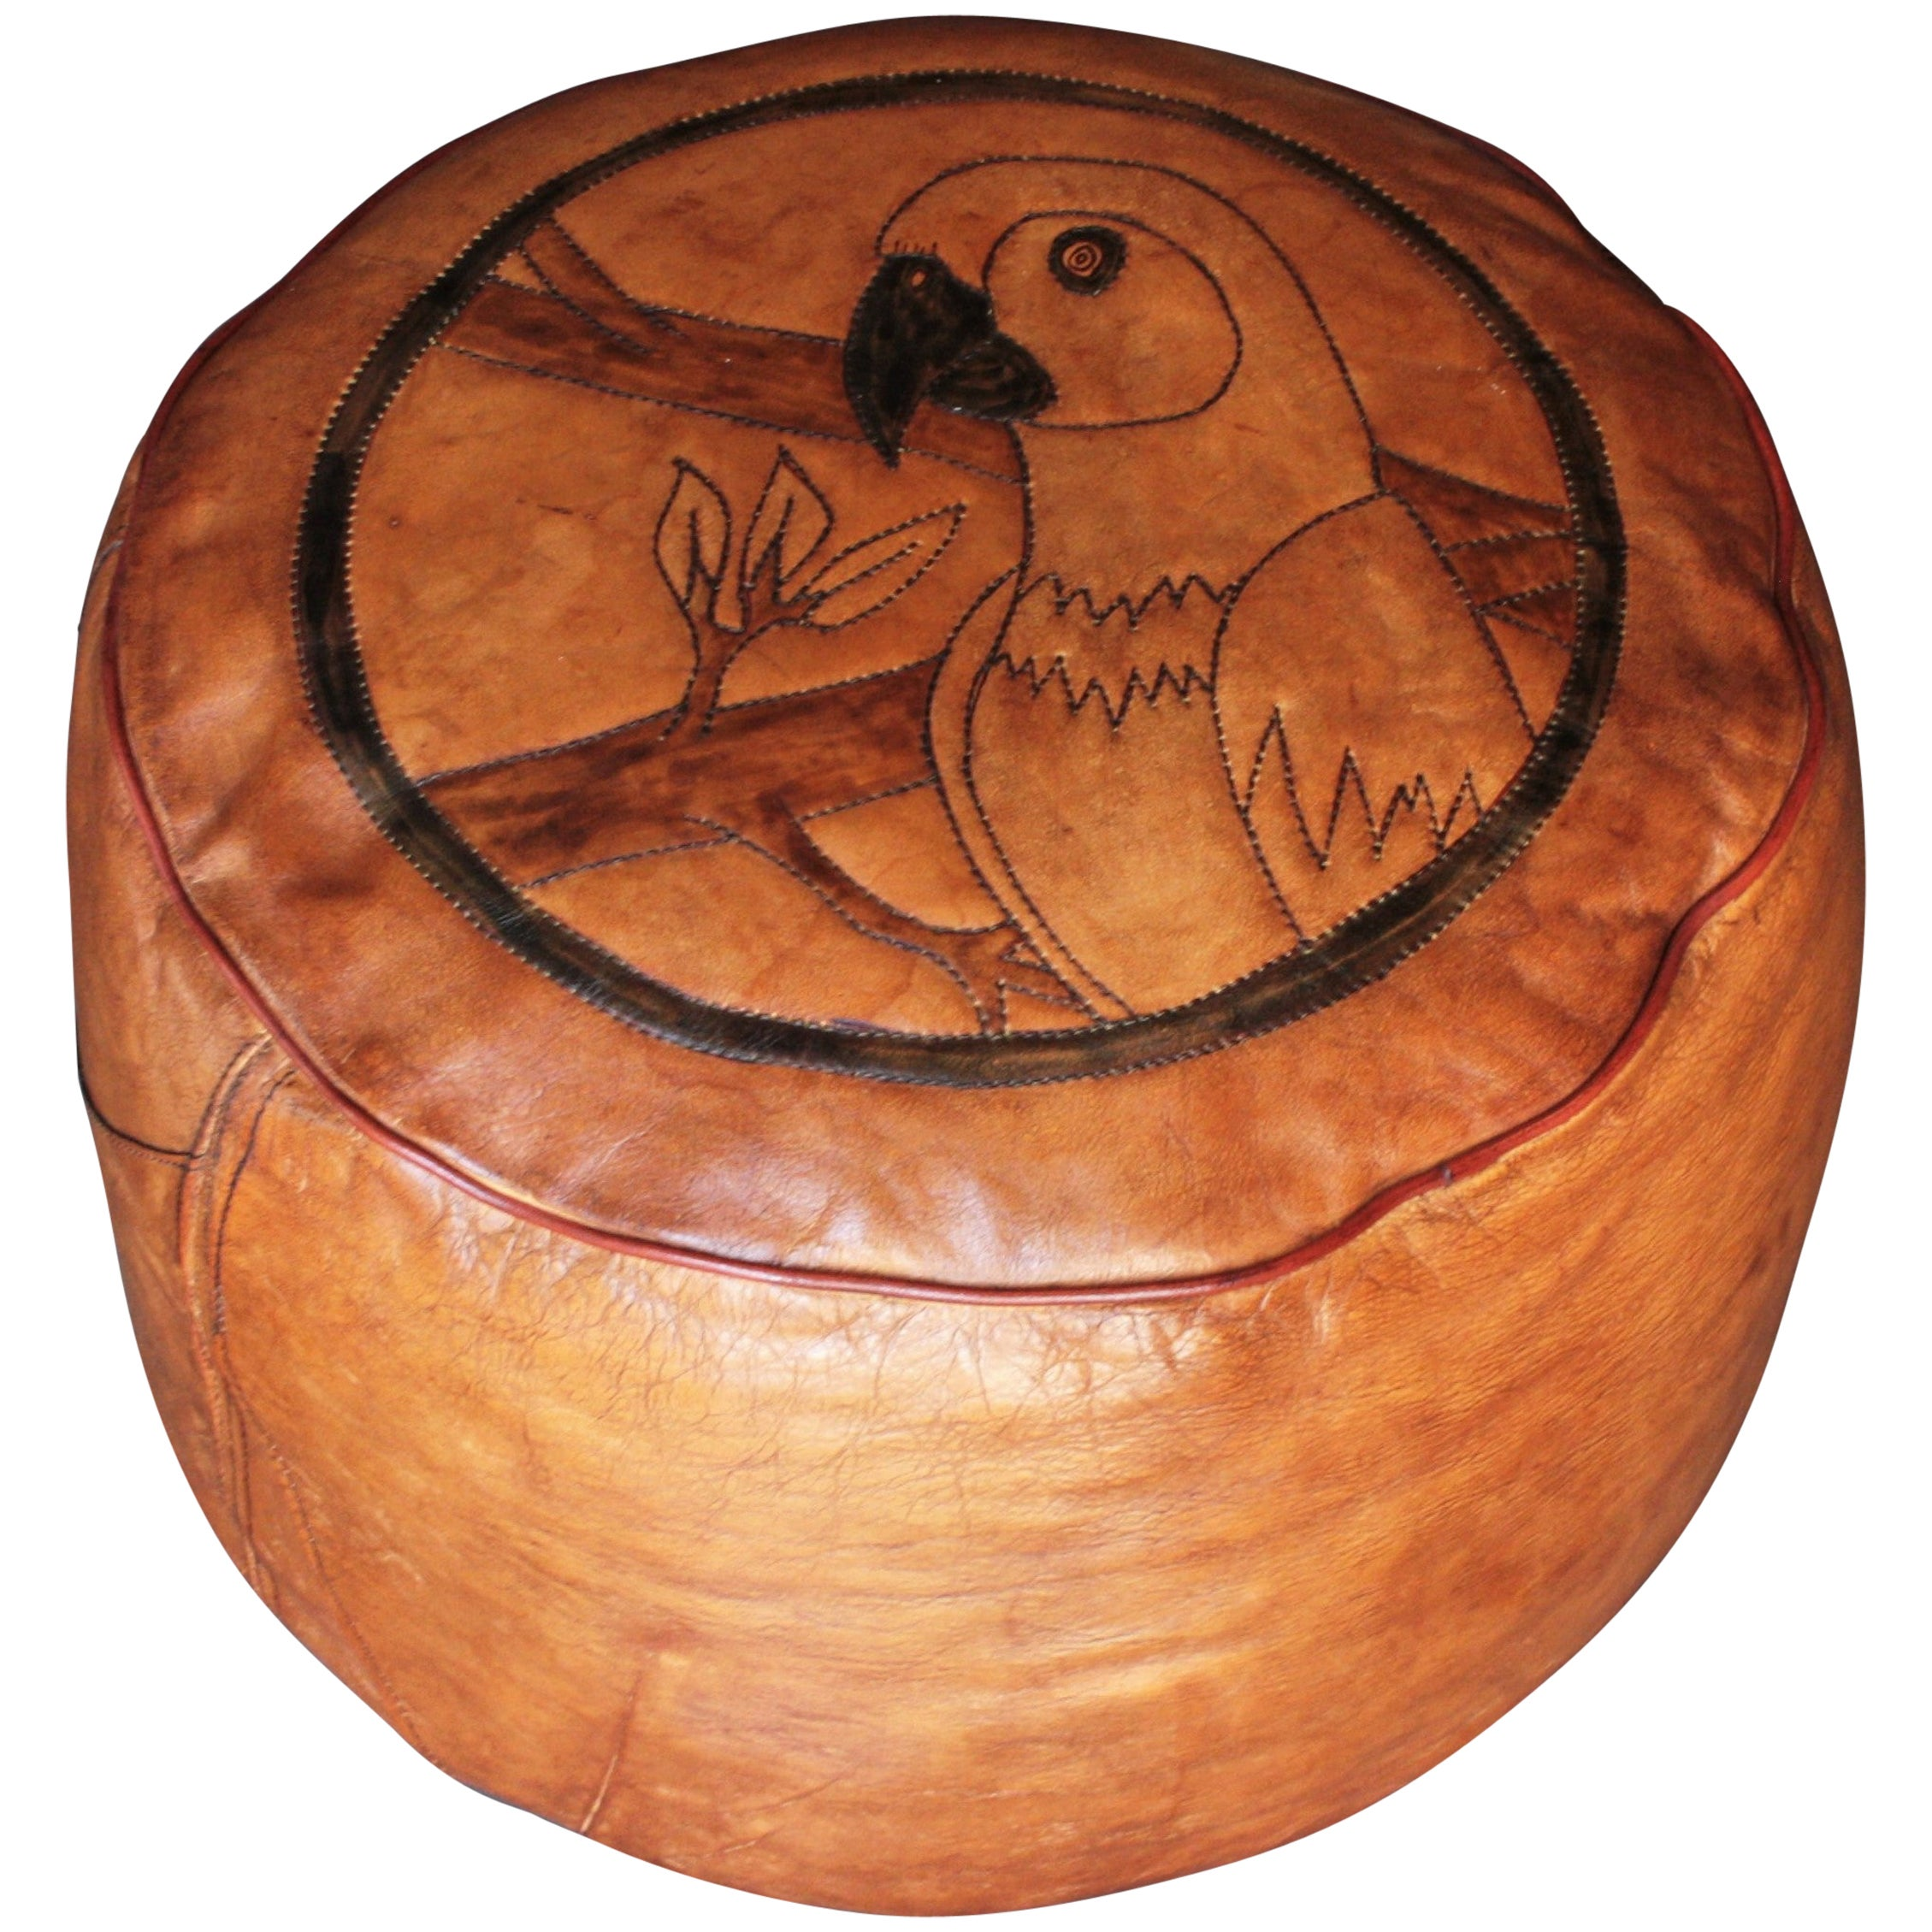 Parrot Motif Handcrafted Leather Pouf, Ottoman or Footstool from the 1960s